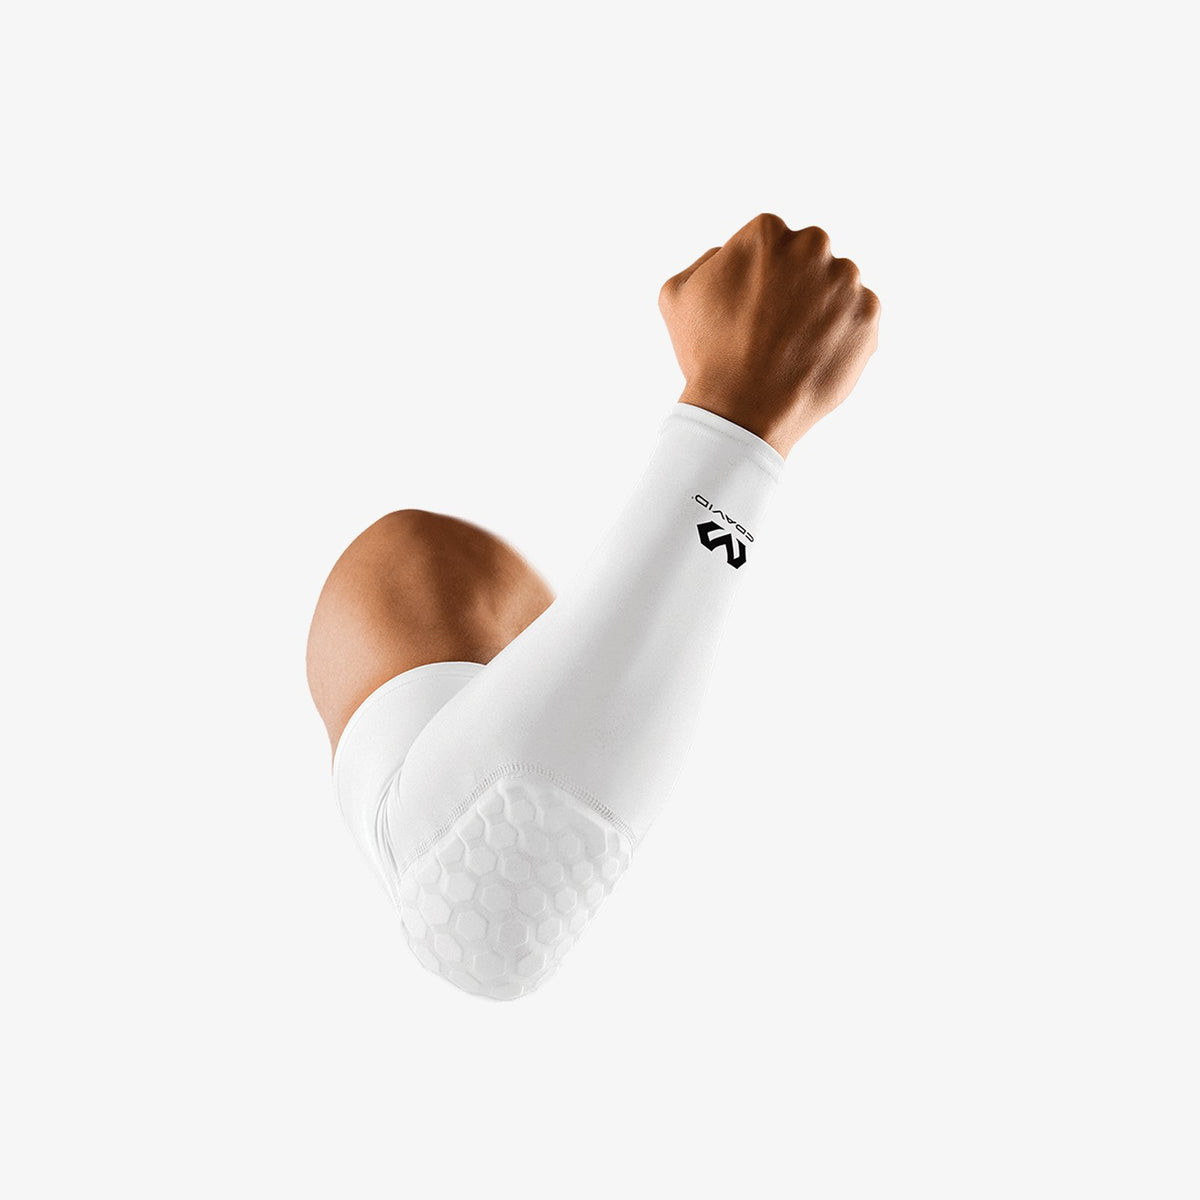 McDavid Hexpad Power Shooter Arm Sleeve - White